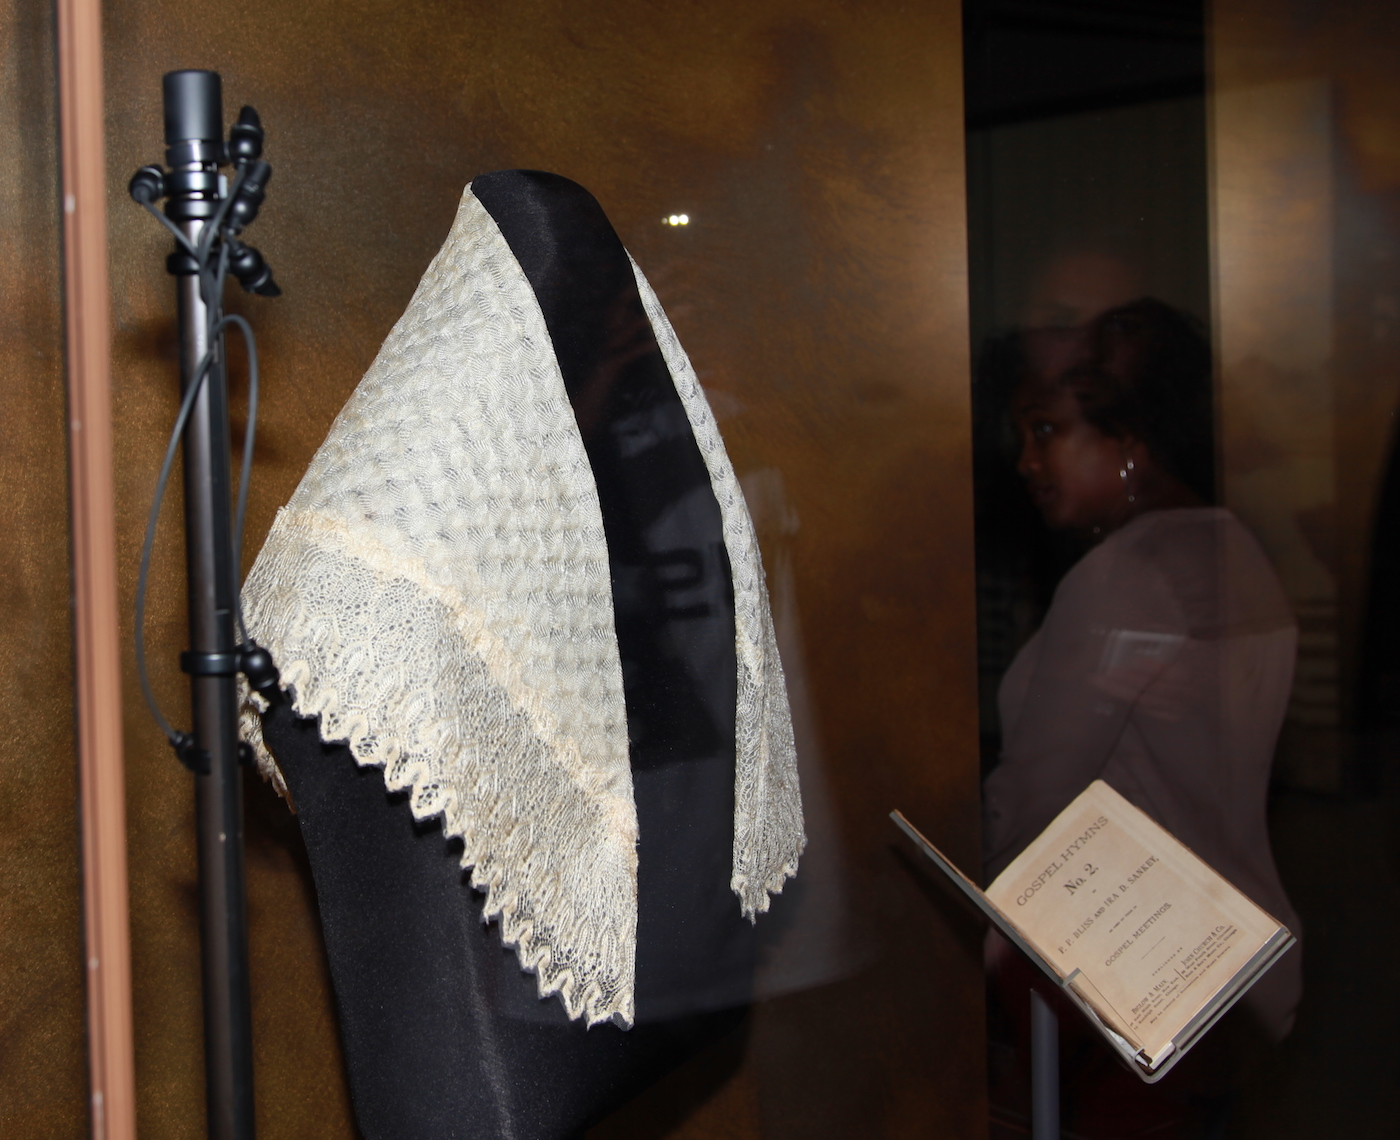 Harriet Tubman's scarf and hymnal at the National Museum of African American History and Culture in Washington, DC